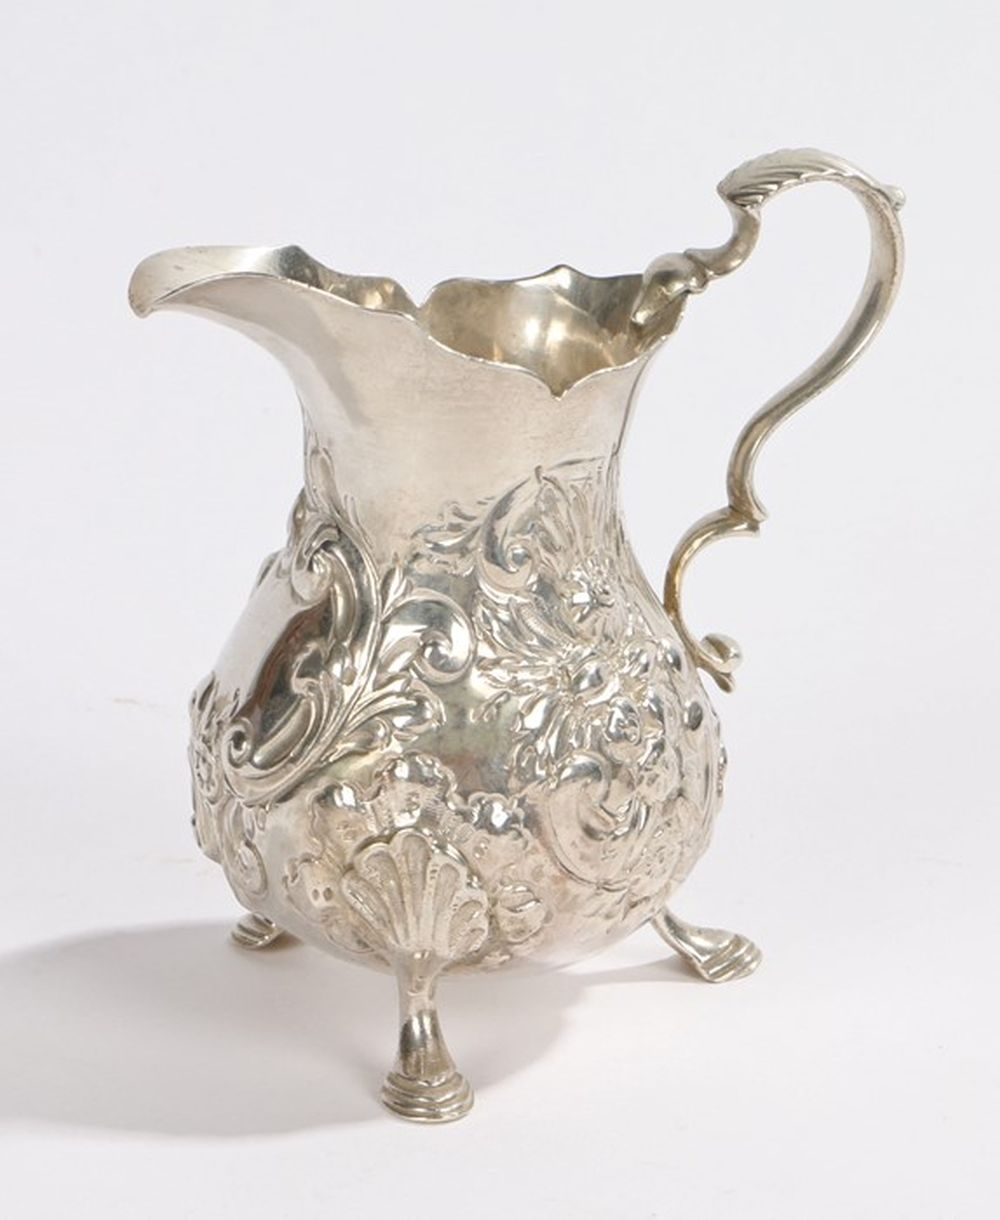 George III silver cream jug, London 1762, maker I.D, with acanthus leaf capped double scroll handle,